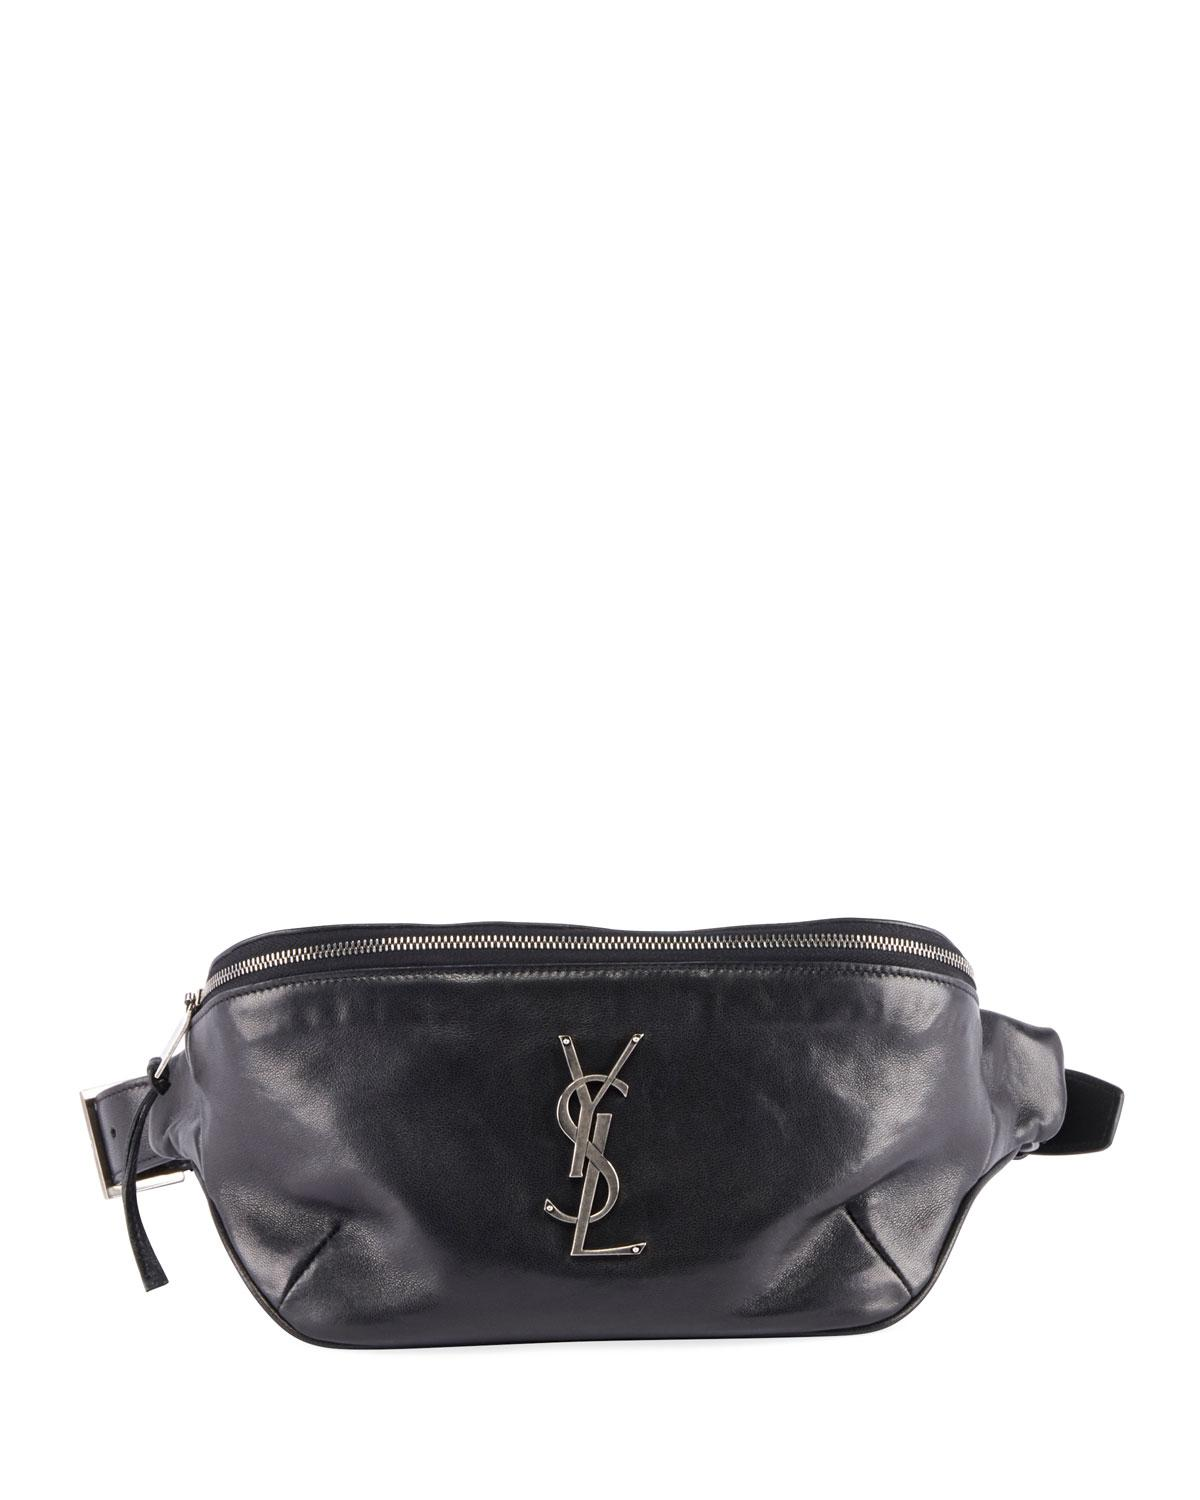 c9f7a7bd76 Lyst - Saint Laurent Ysl Monogram Curved Zip-top Belt Bag in Black